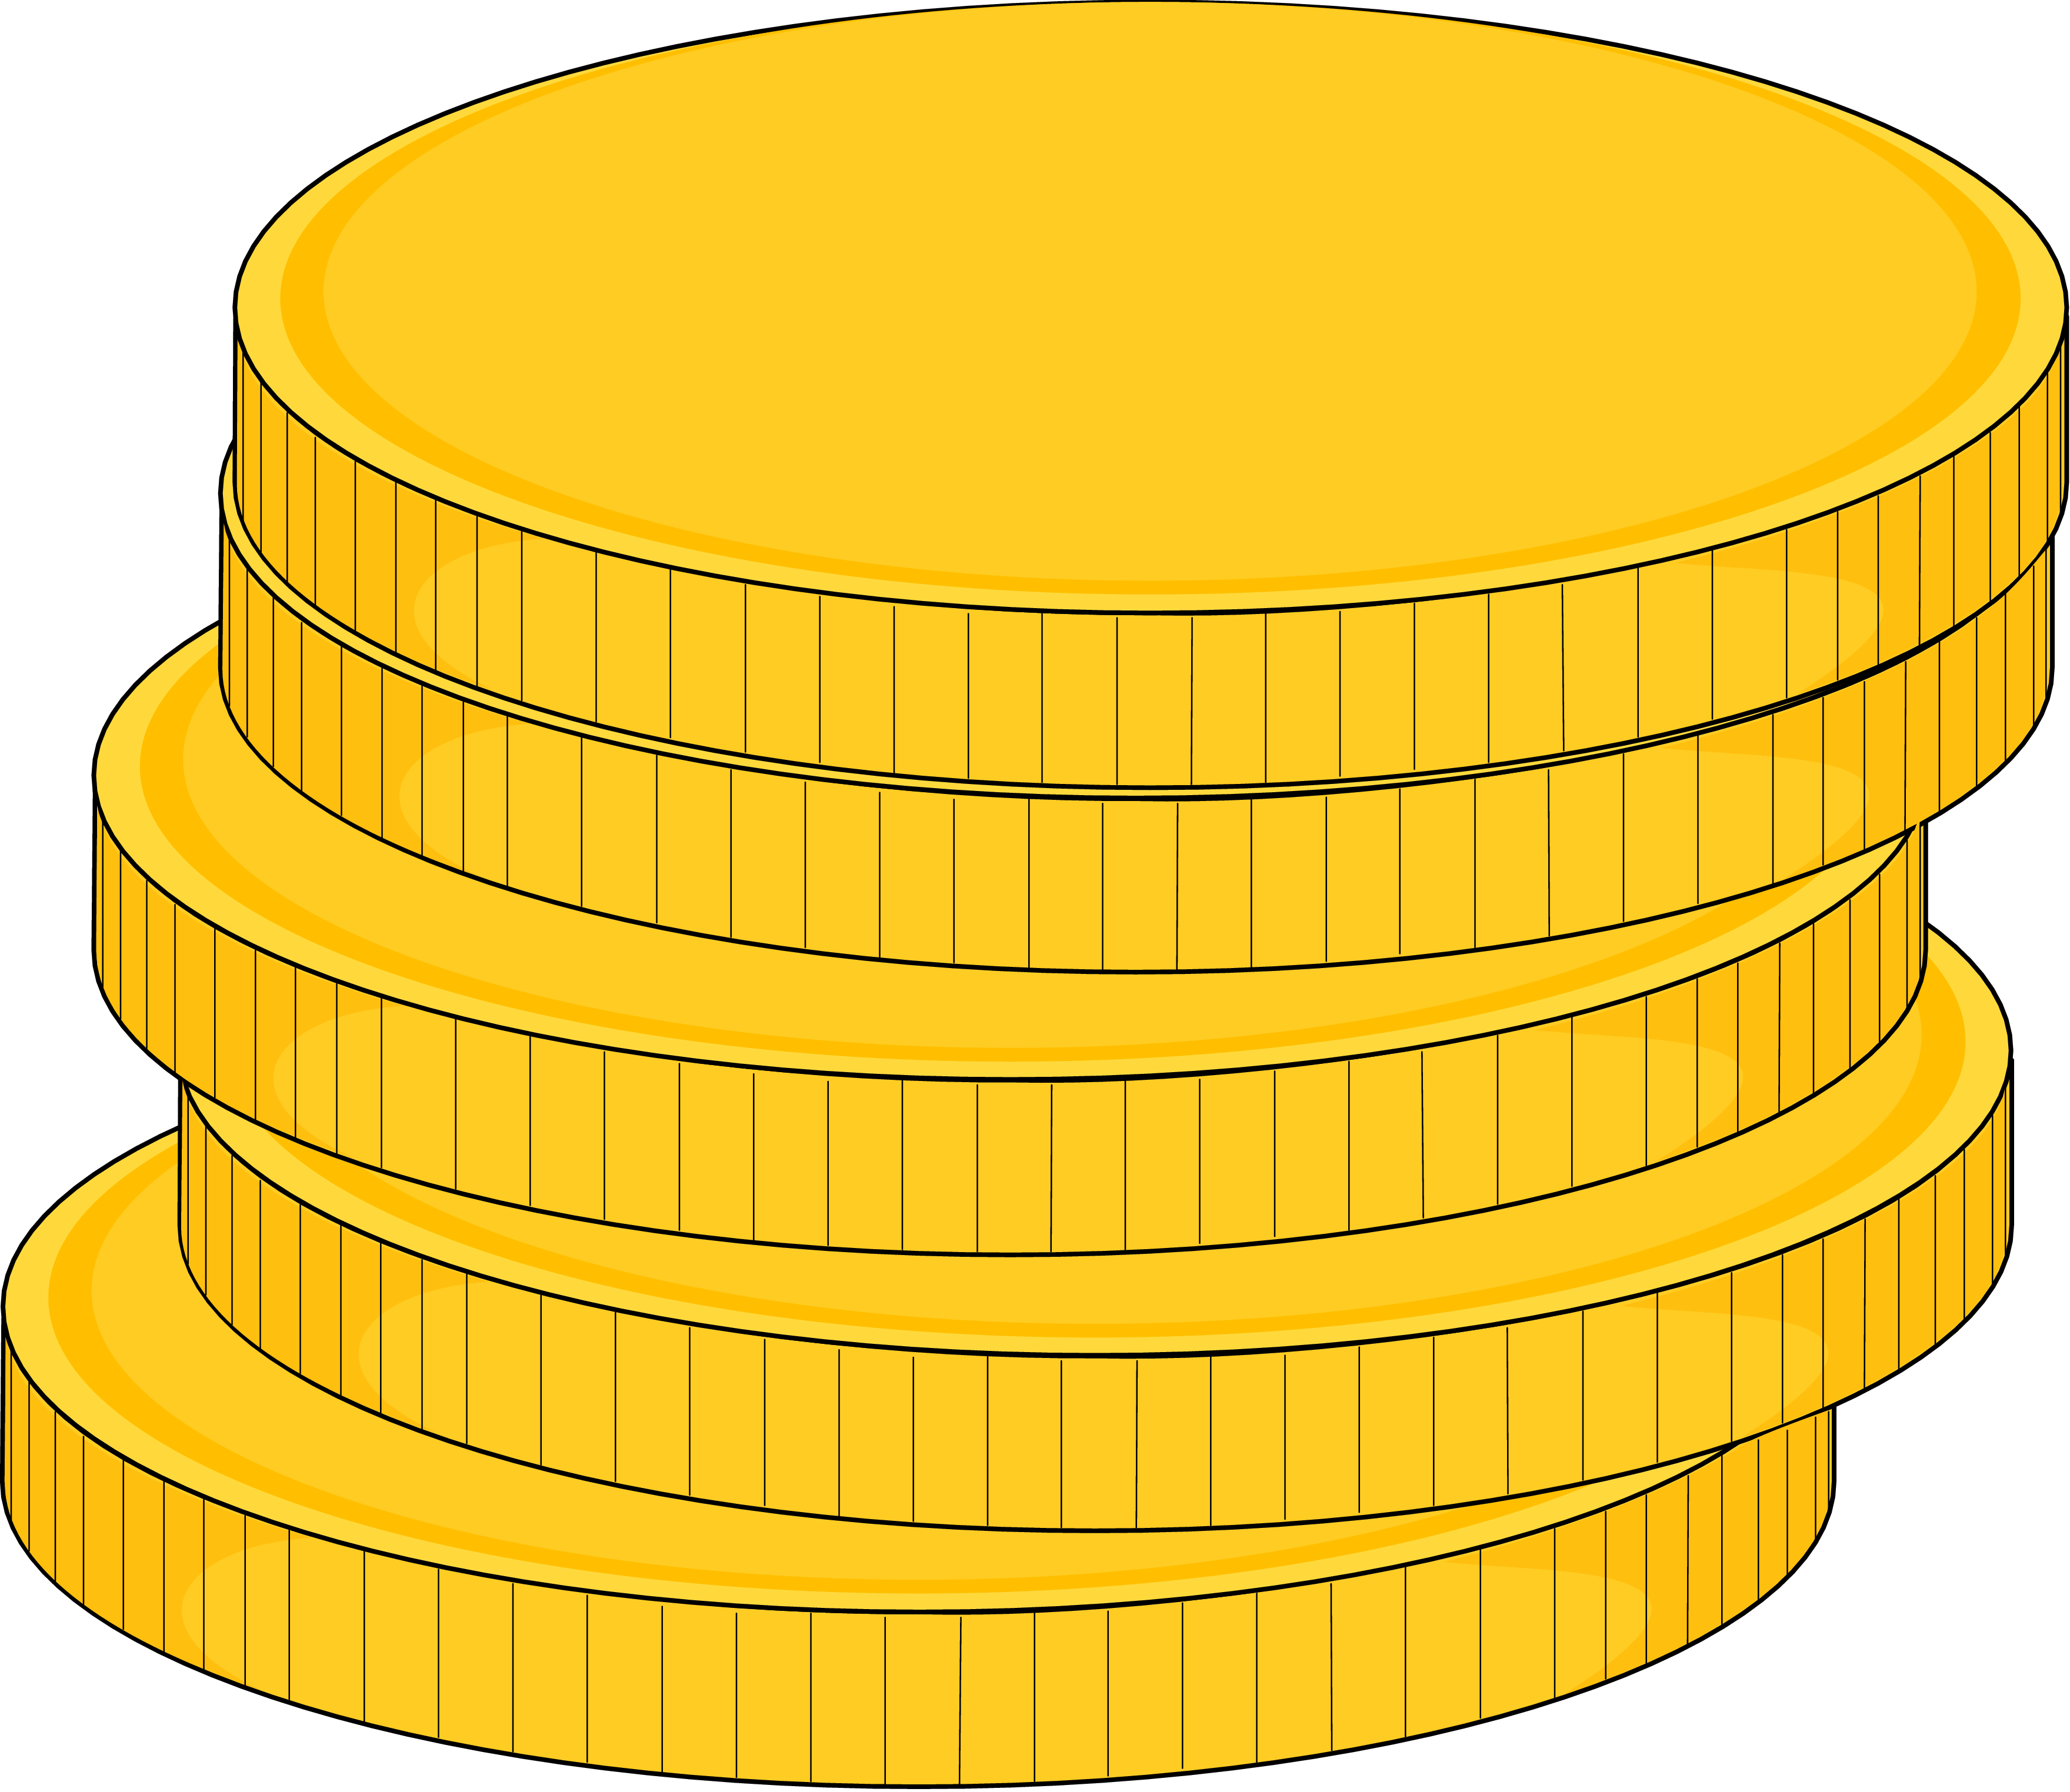 gold coin clipart png - Clipground